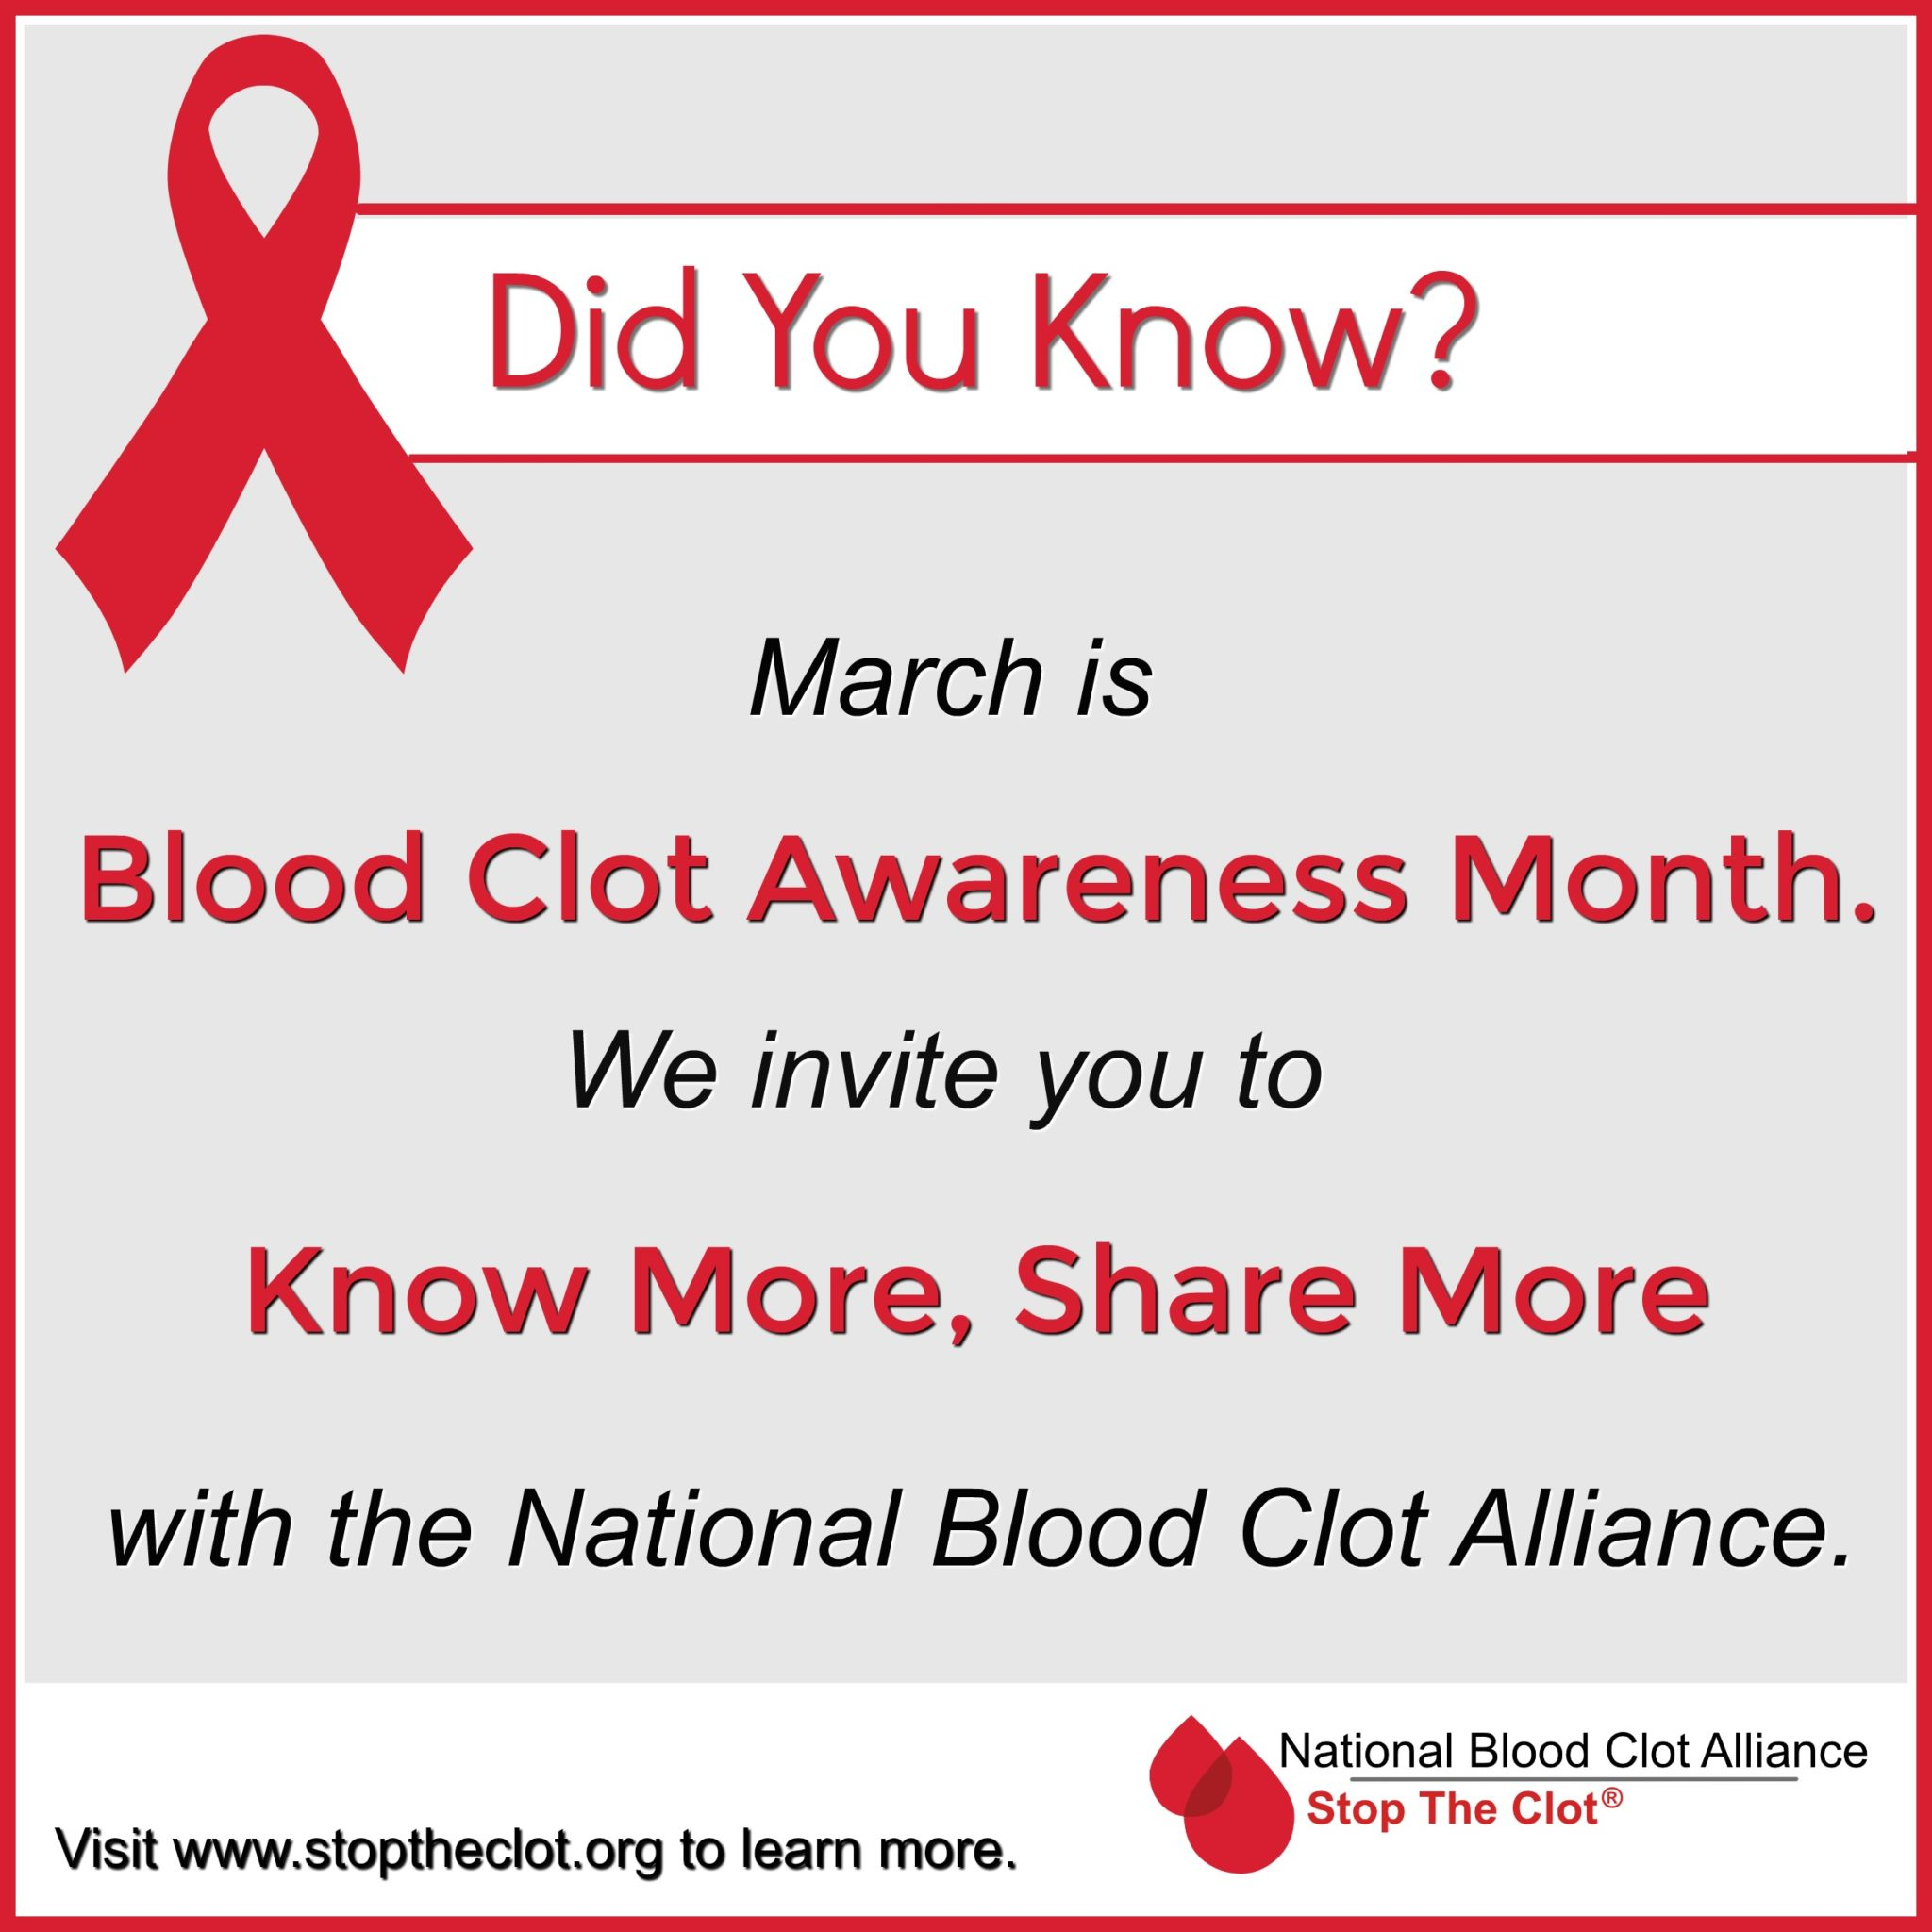 How to distinguish bleeding from monthly ones